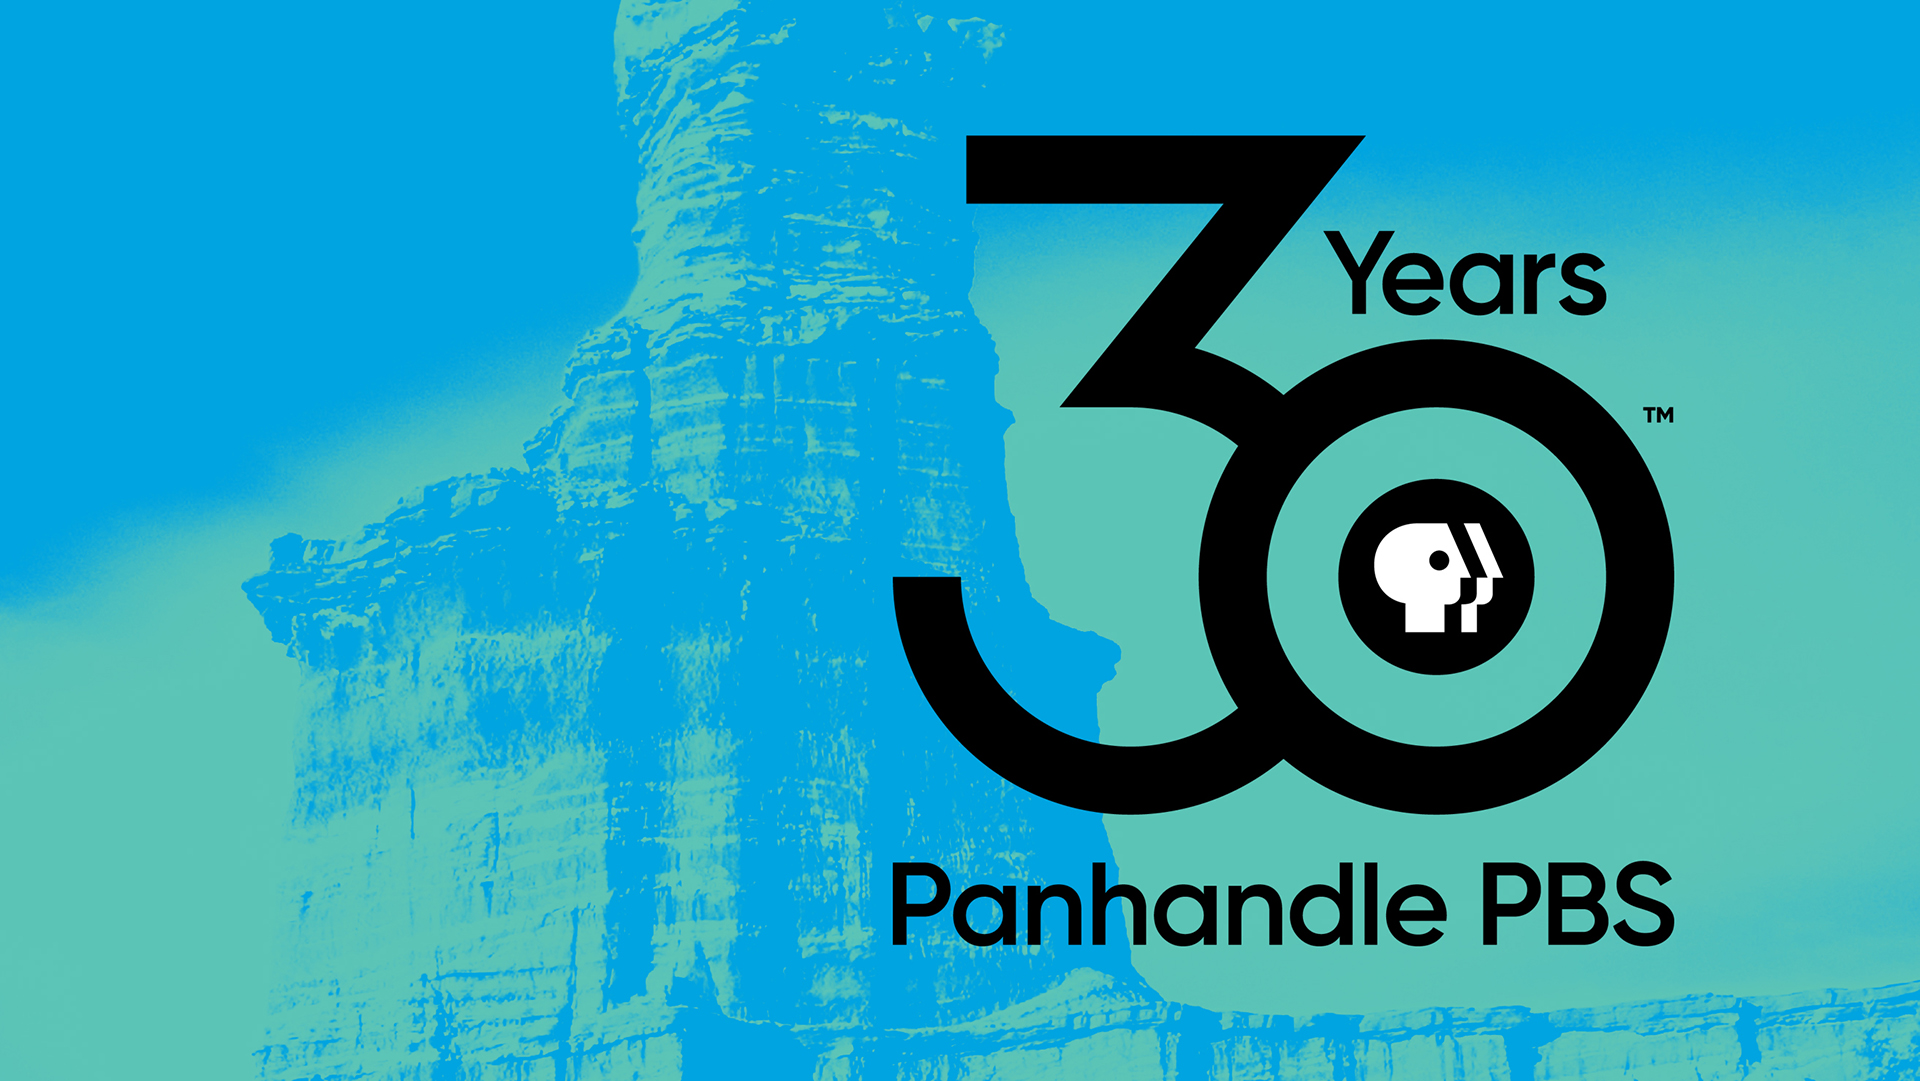 More classic Panhandle PBS documentaries to air through the end of the year